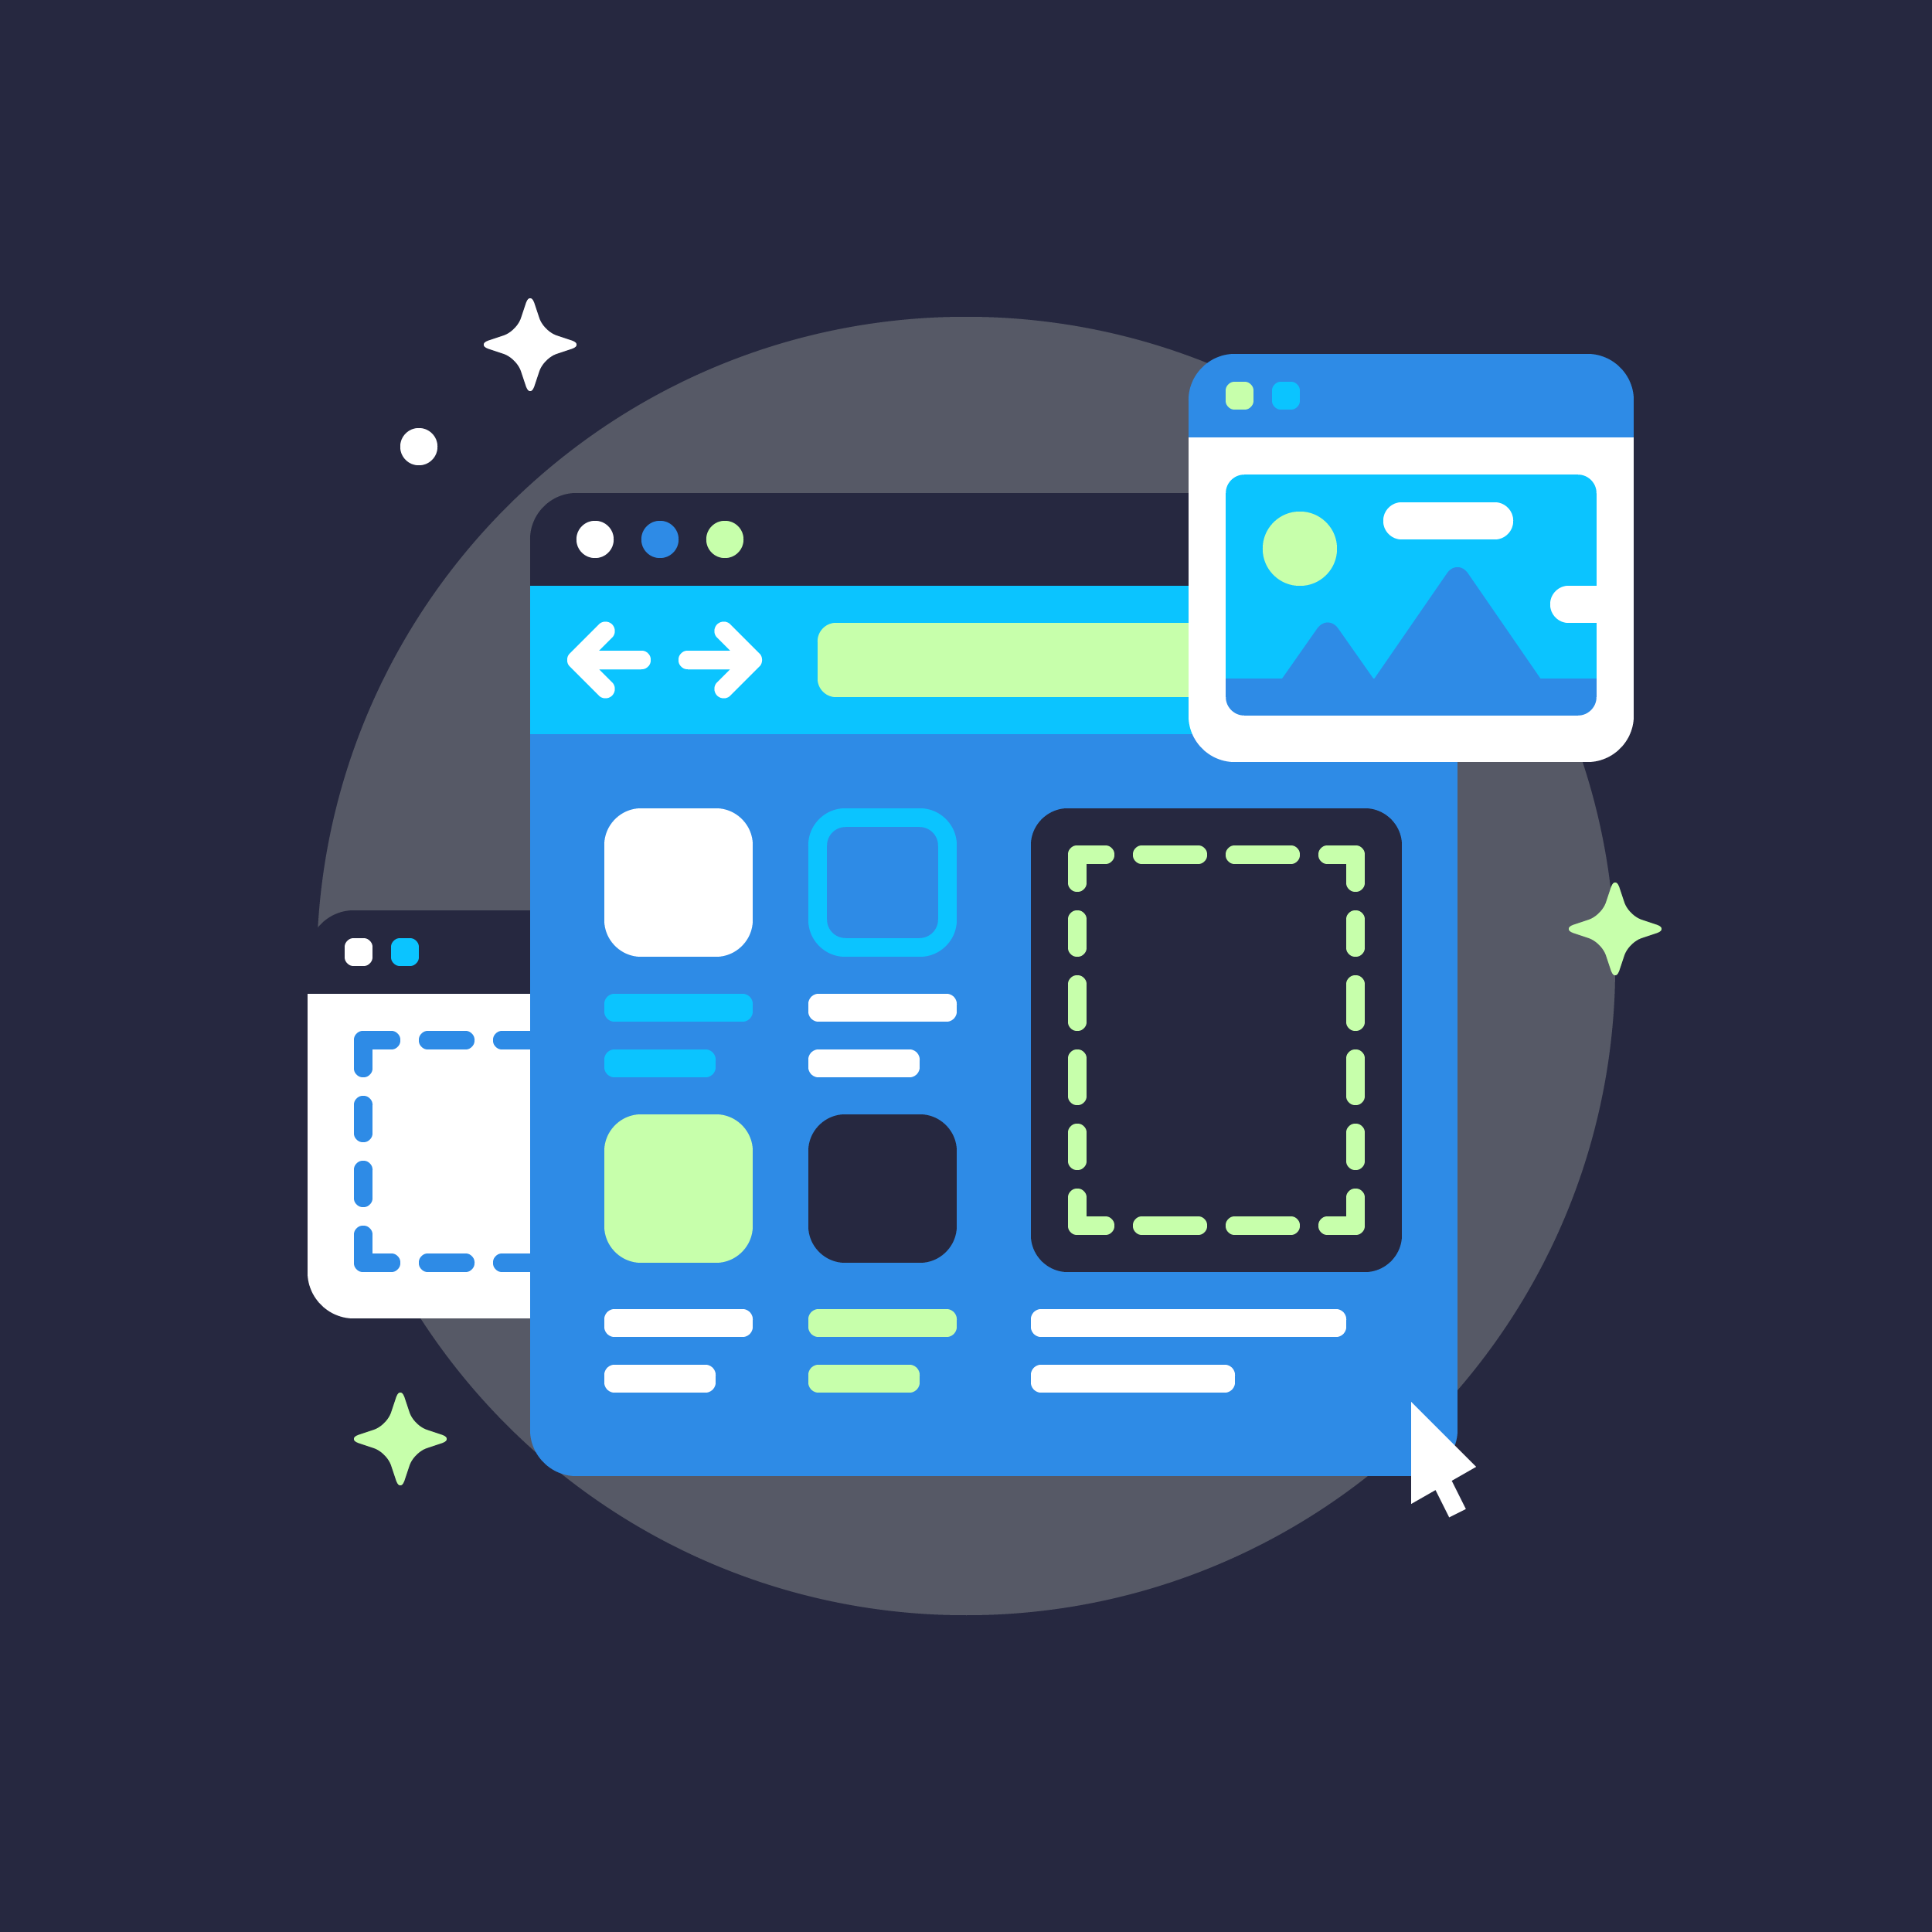 Matt Anderson spot illustrations for Ui8 - Wireframes